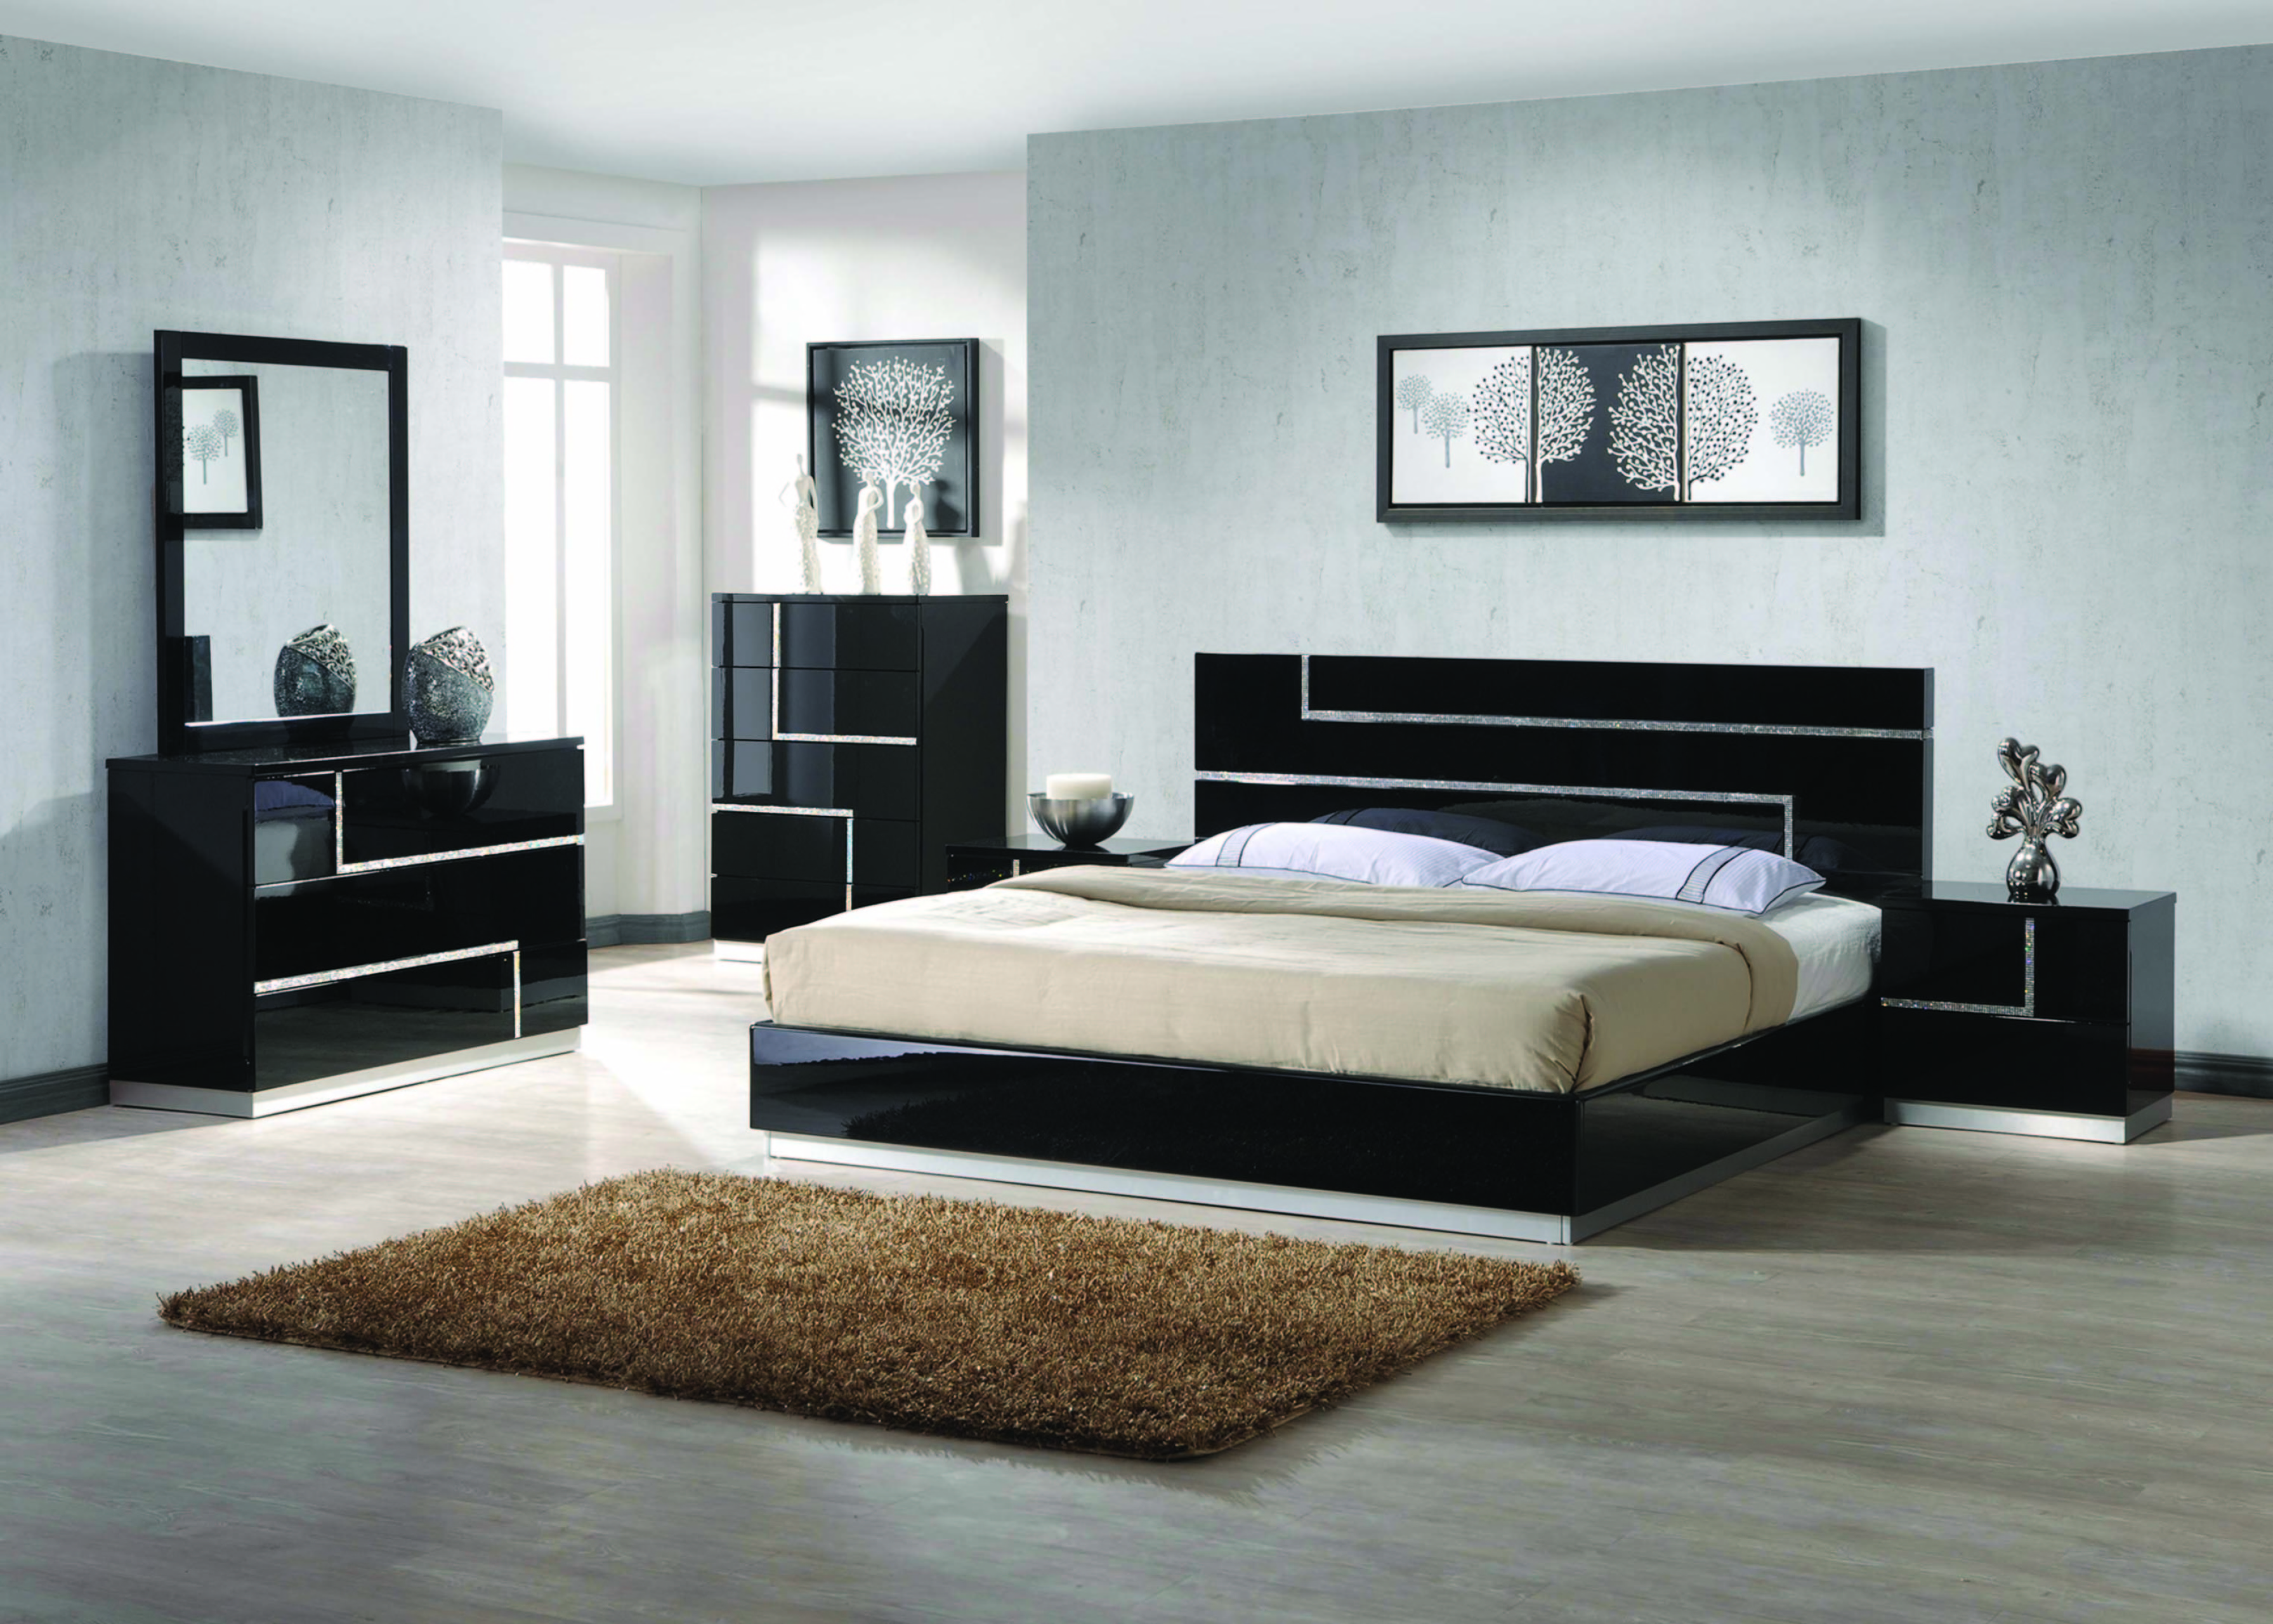 Barcelona Modern Bedroom Set Queen Size Bed 4pc Rhinestone On Headboard